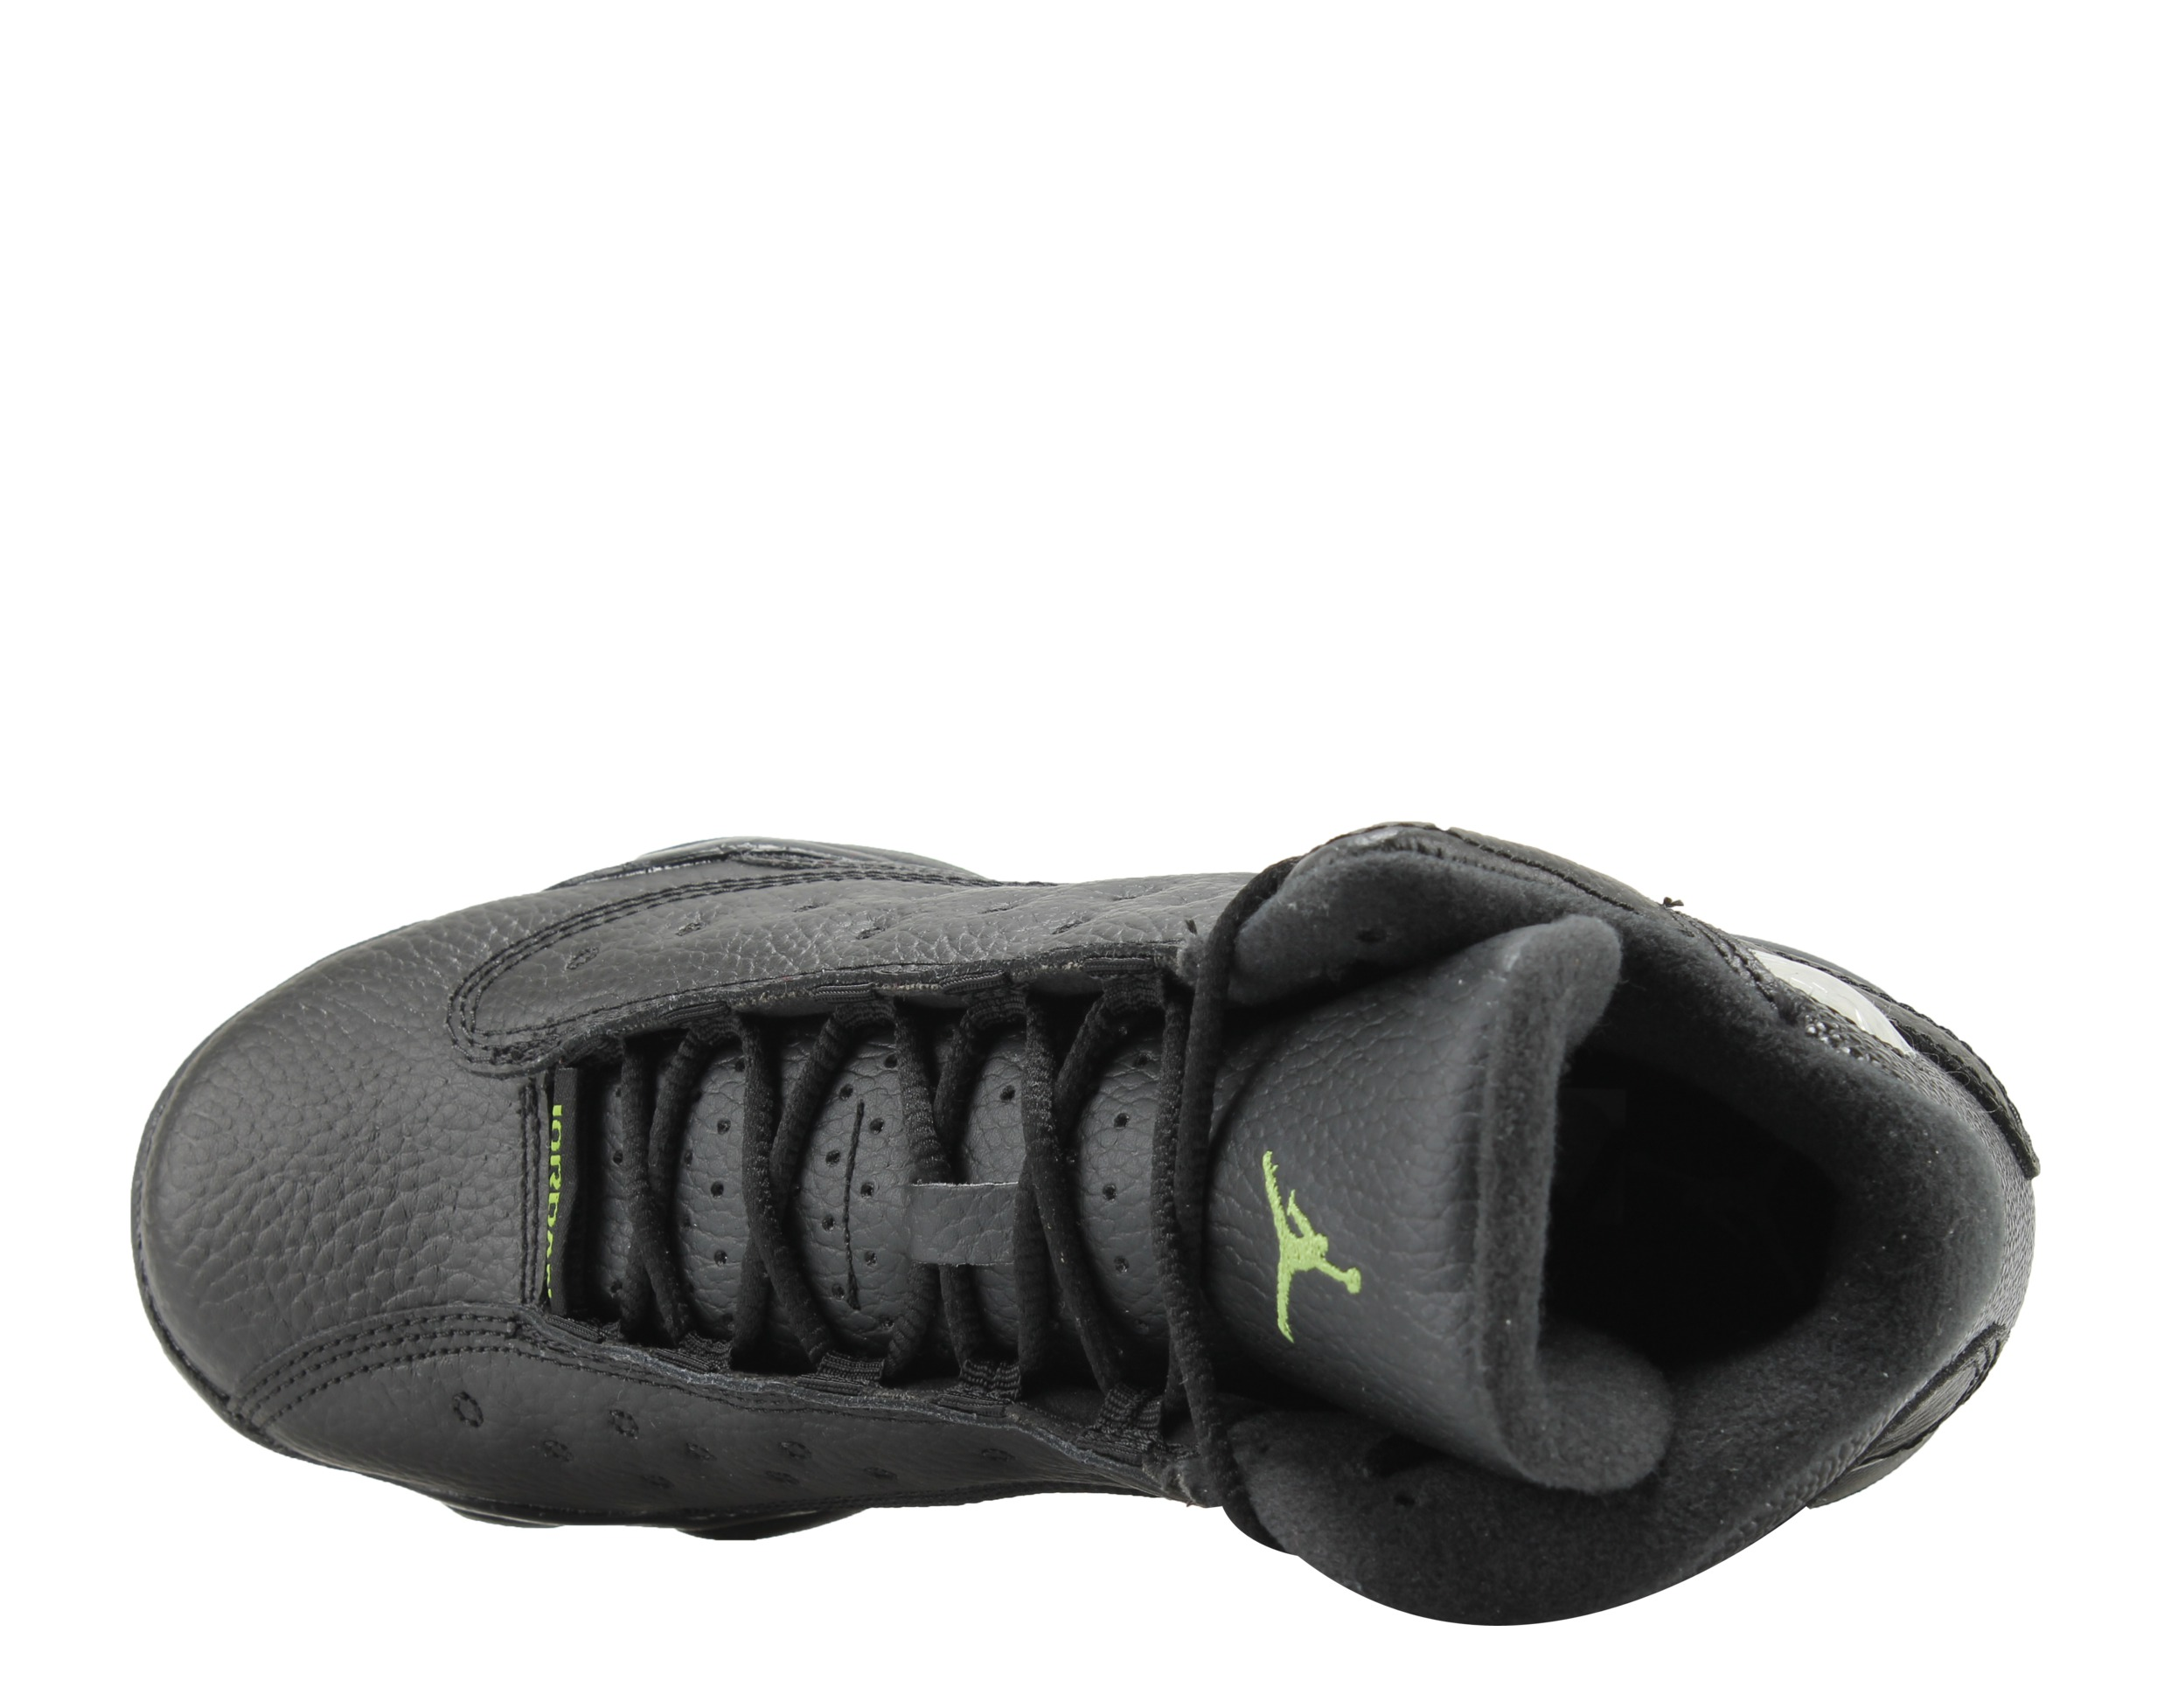 Nike Air Jordan 13 Retro BG Black Altitude Big Kids Basketball Shoes  414574-042 - Walmart.com 22cf3efa1